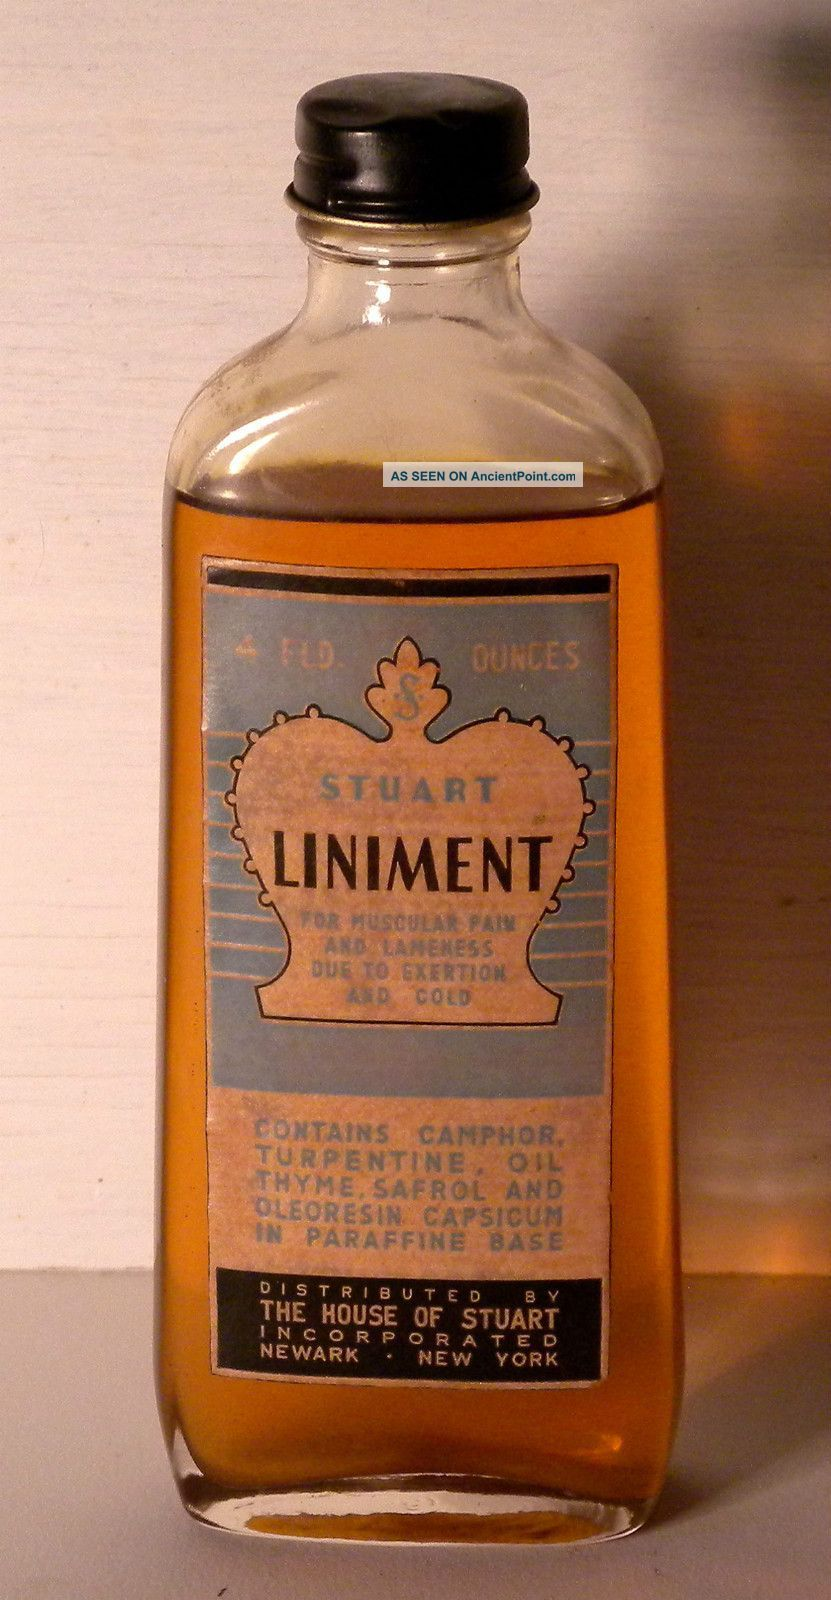 Liniment - House of Stuart Inc  Newark New York - For muscular pain